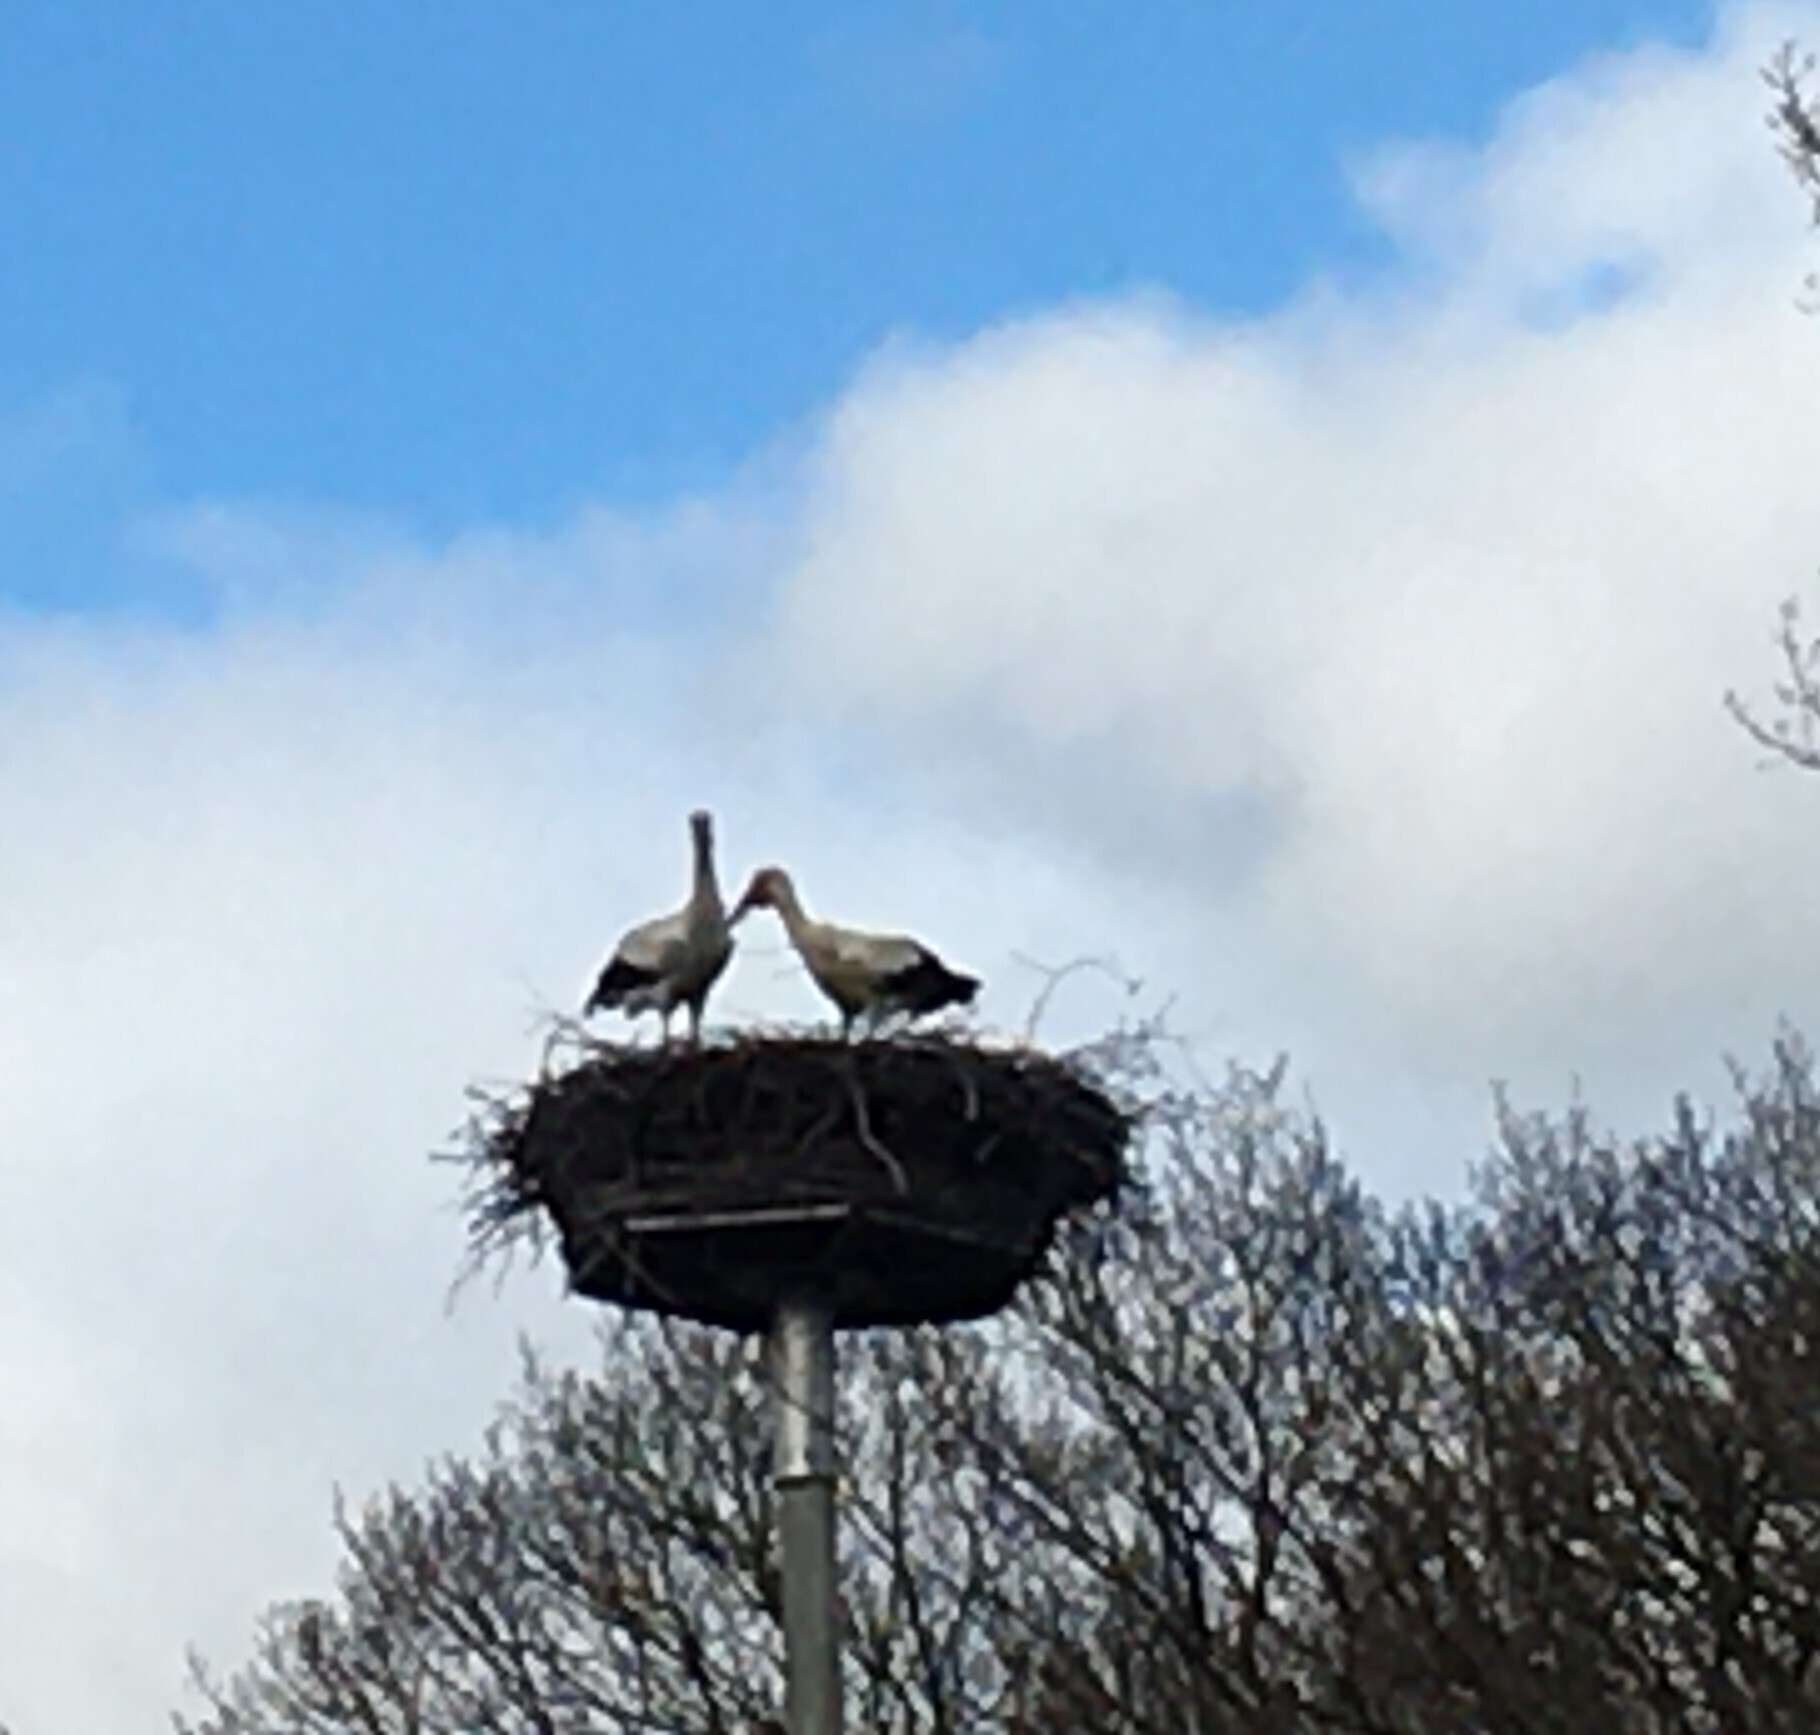 Storch 01.04.21